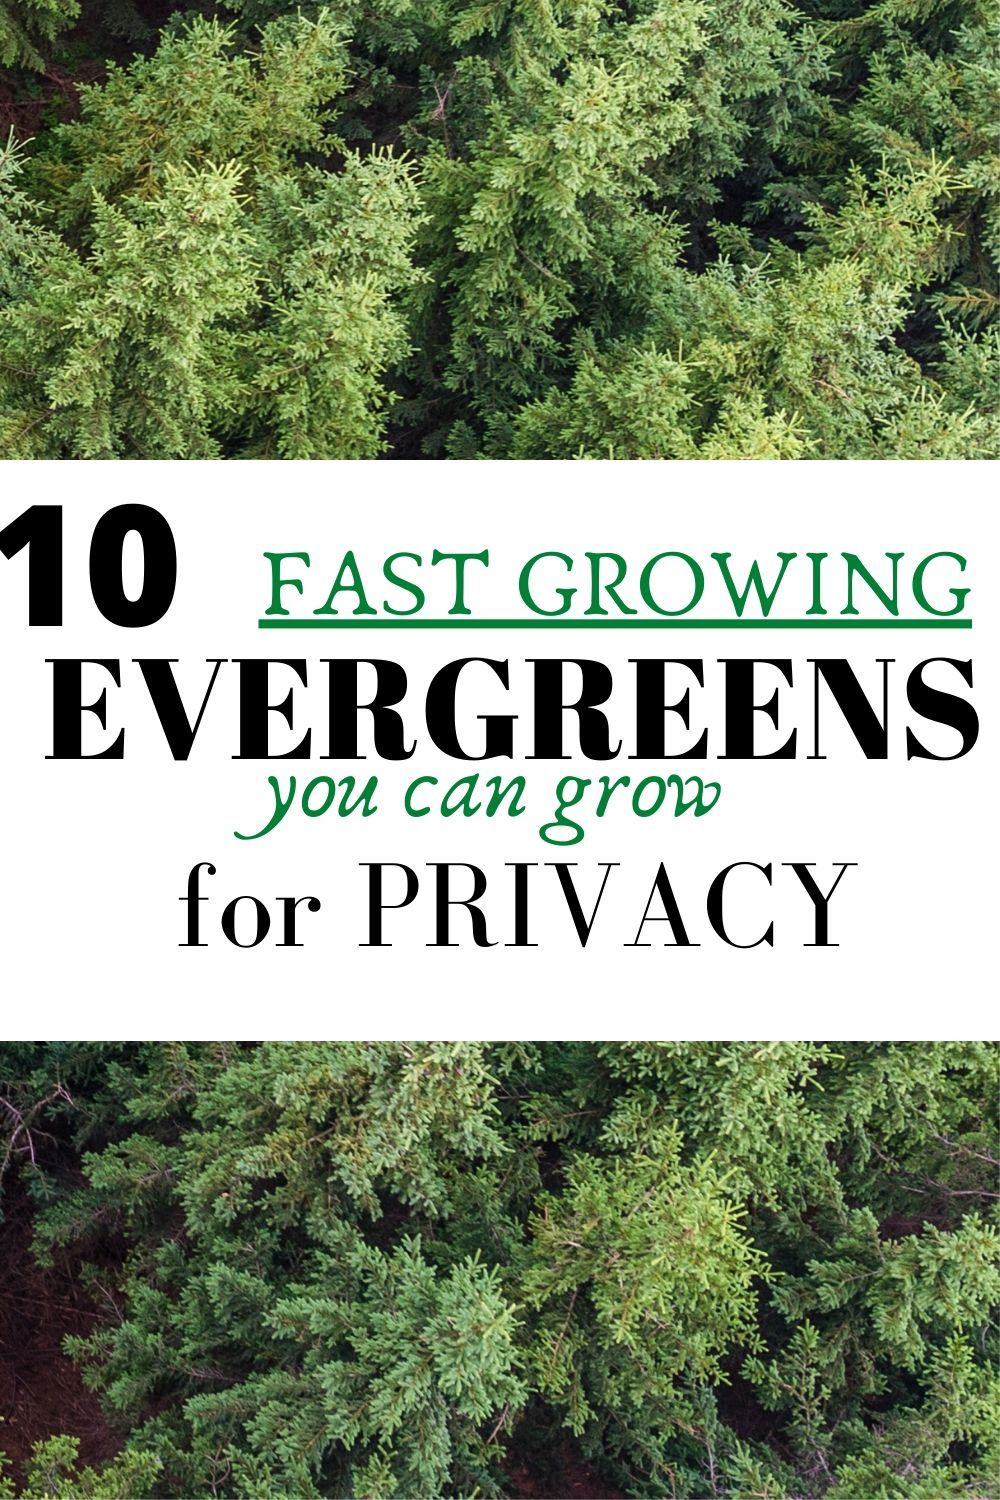 10 Fast Growing Evergreen Trees For Privacy Garden Down South In 2020 Fast Growing Evergreens Evergreen Trees For Privacy Evergreen Shrubs